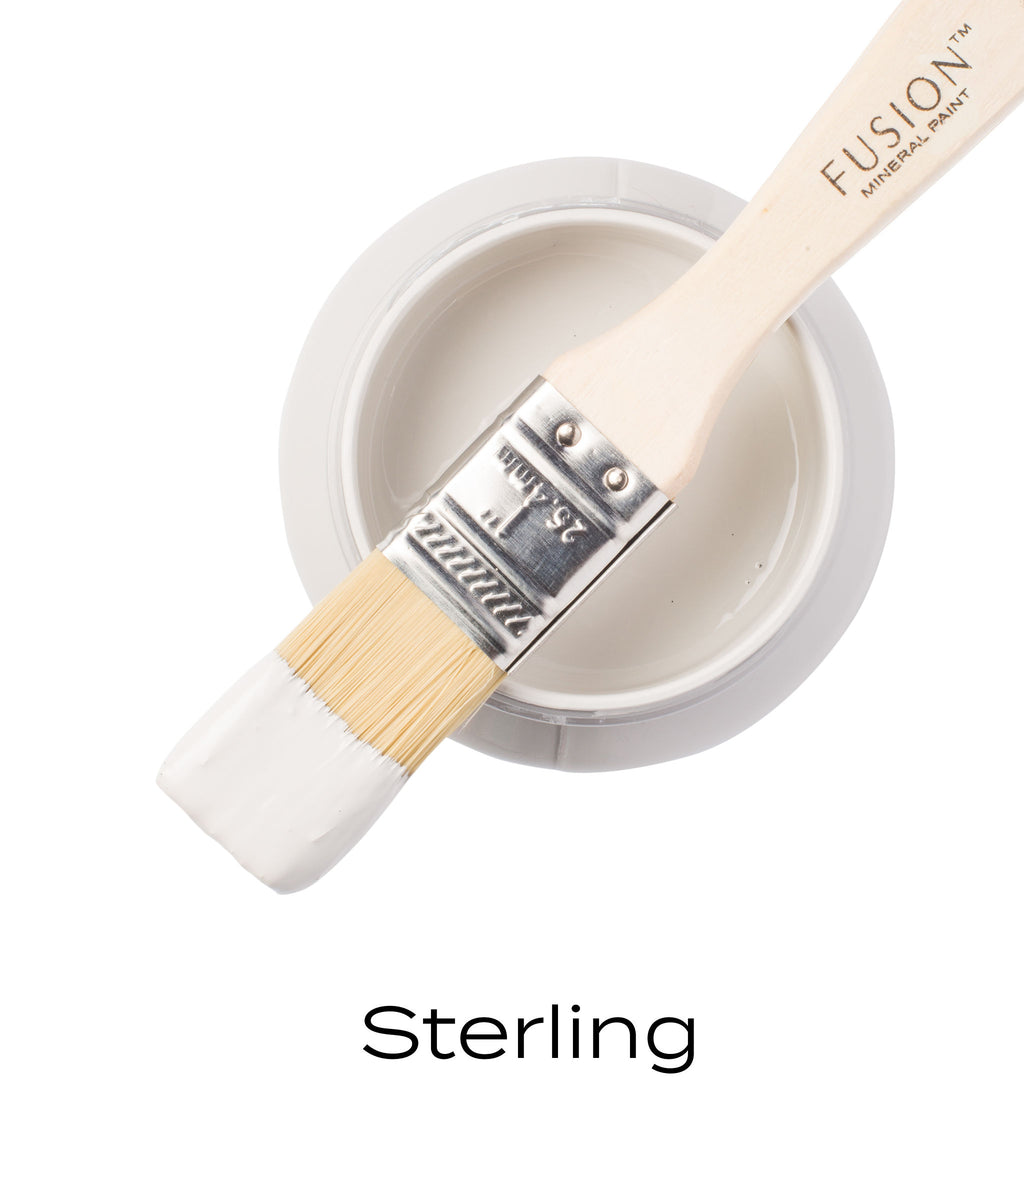 Sterling Fusion Mineral Paint Near Me